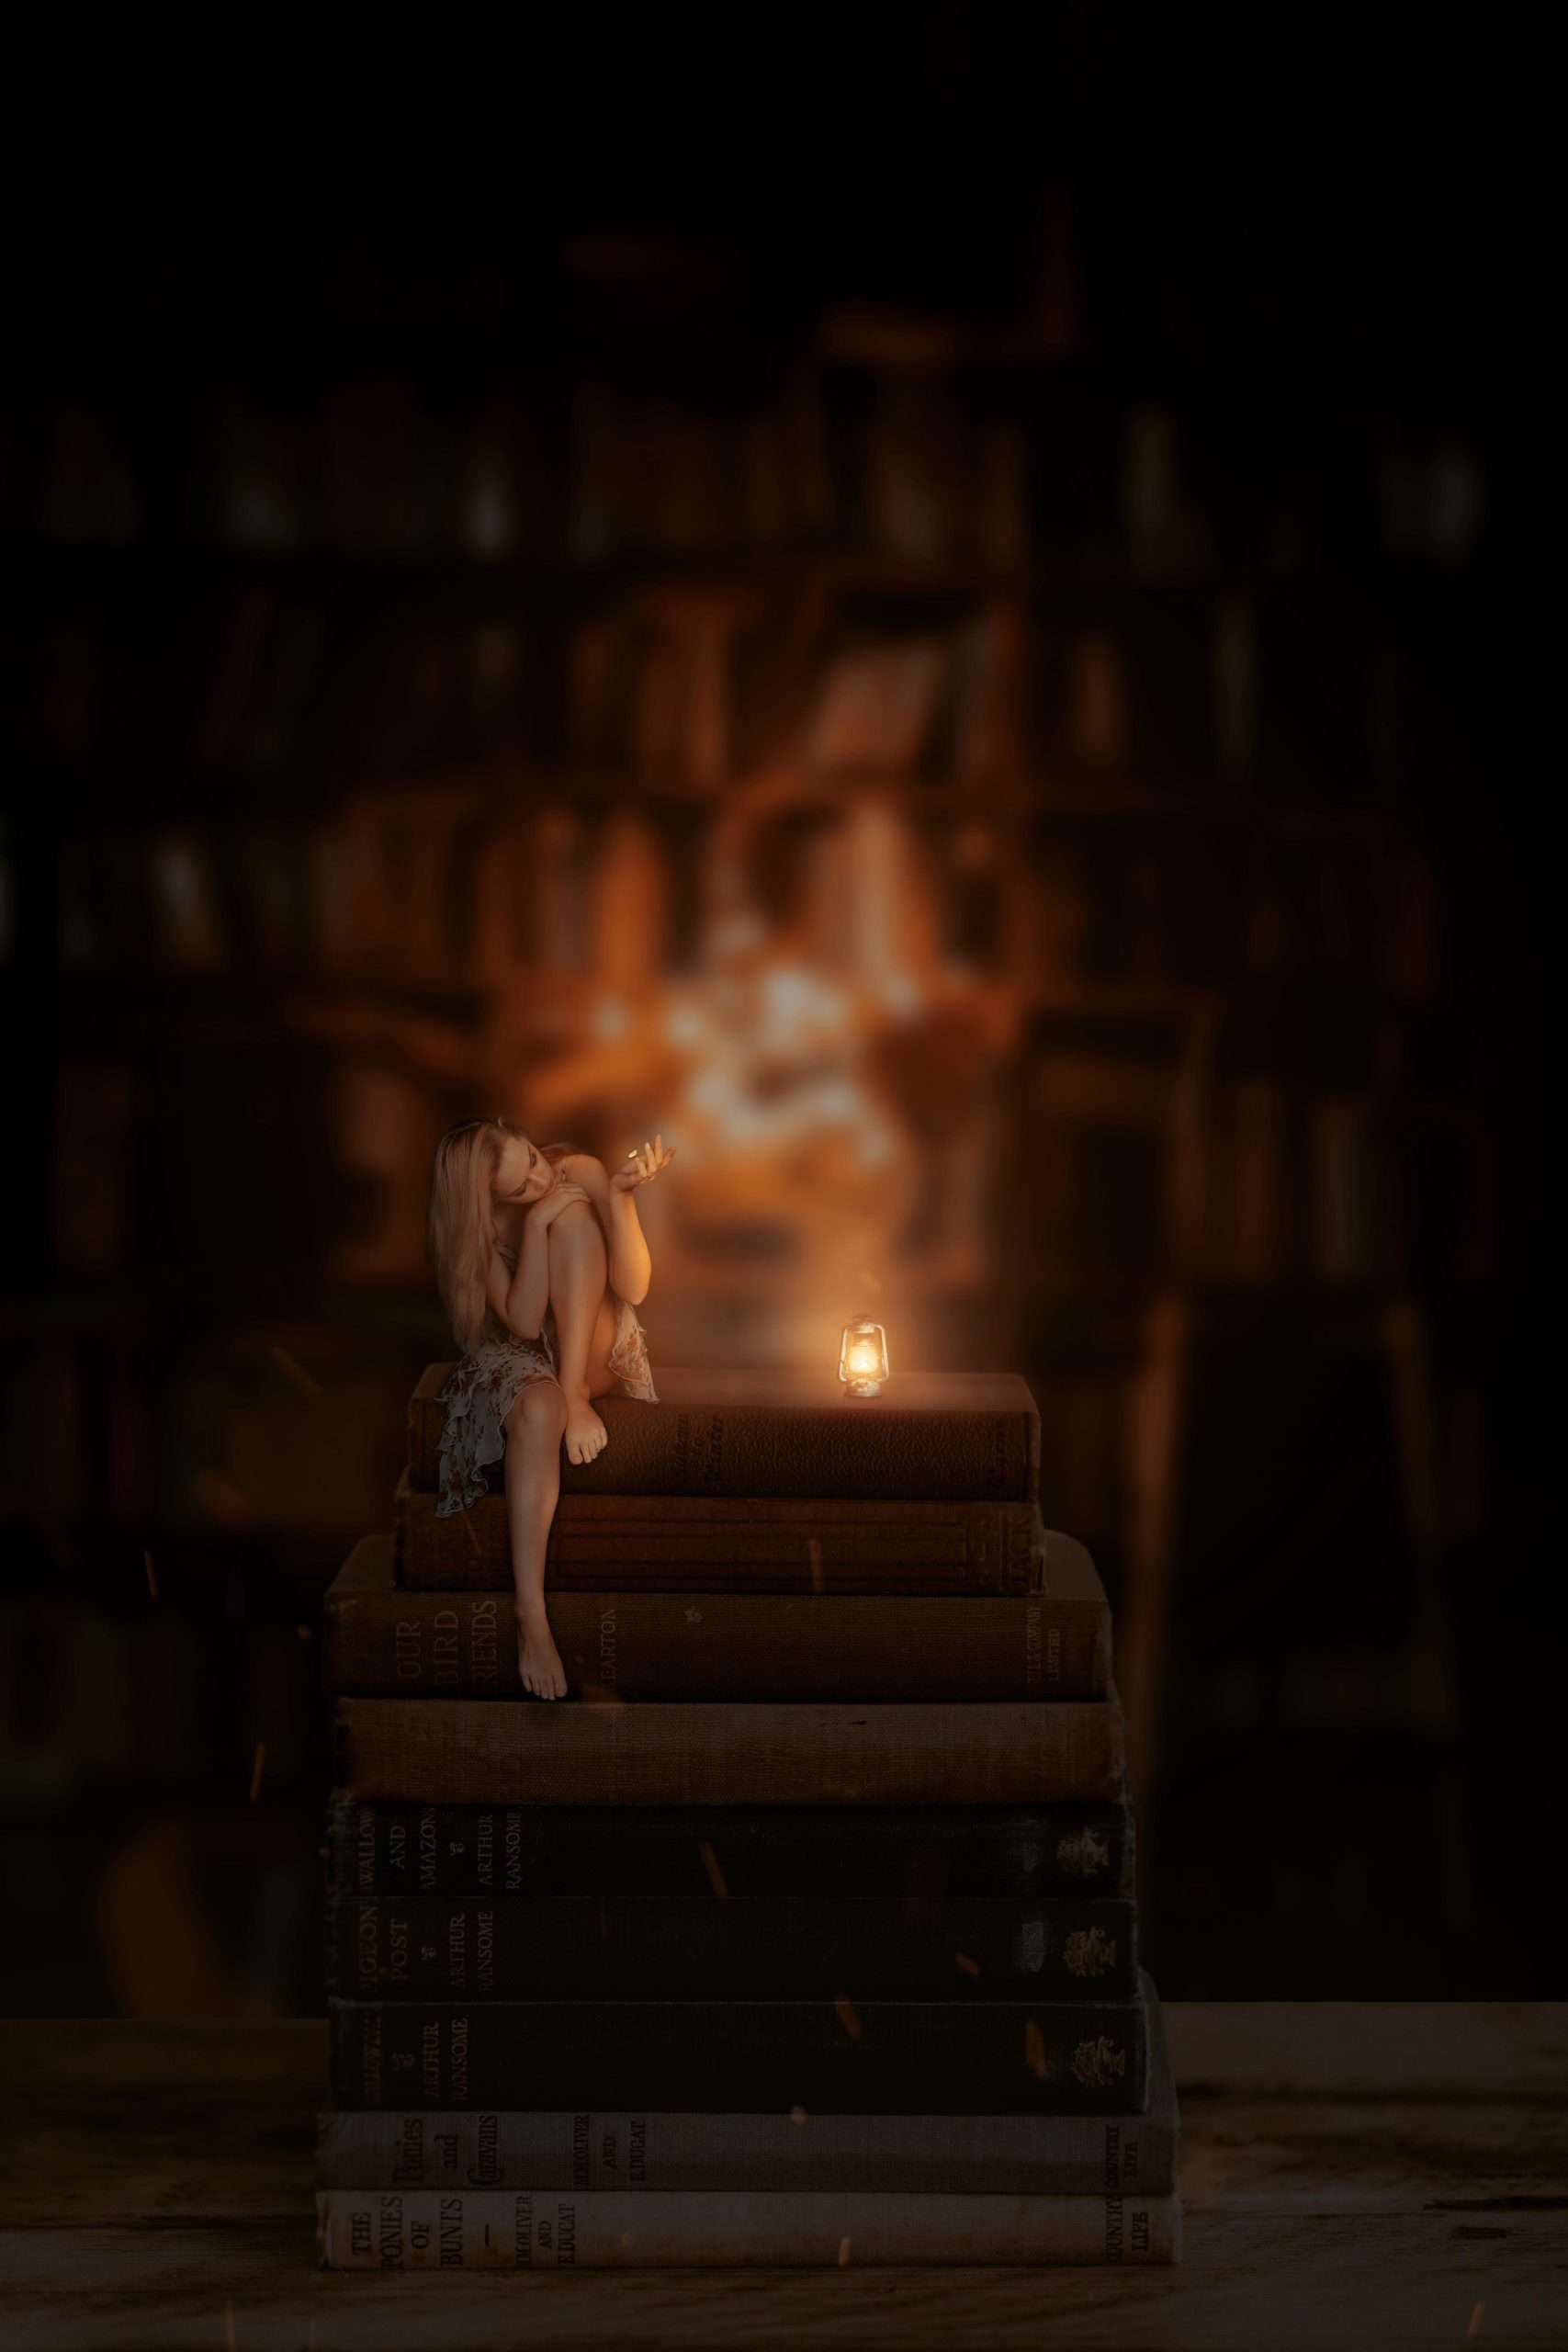 Create a Scene of a Fairy Sitting on a Stack Books in Photoshop